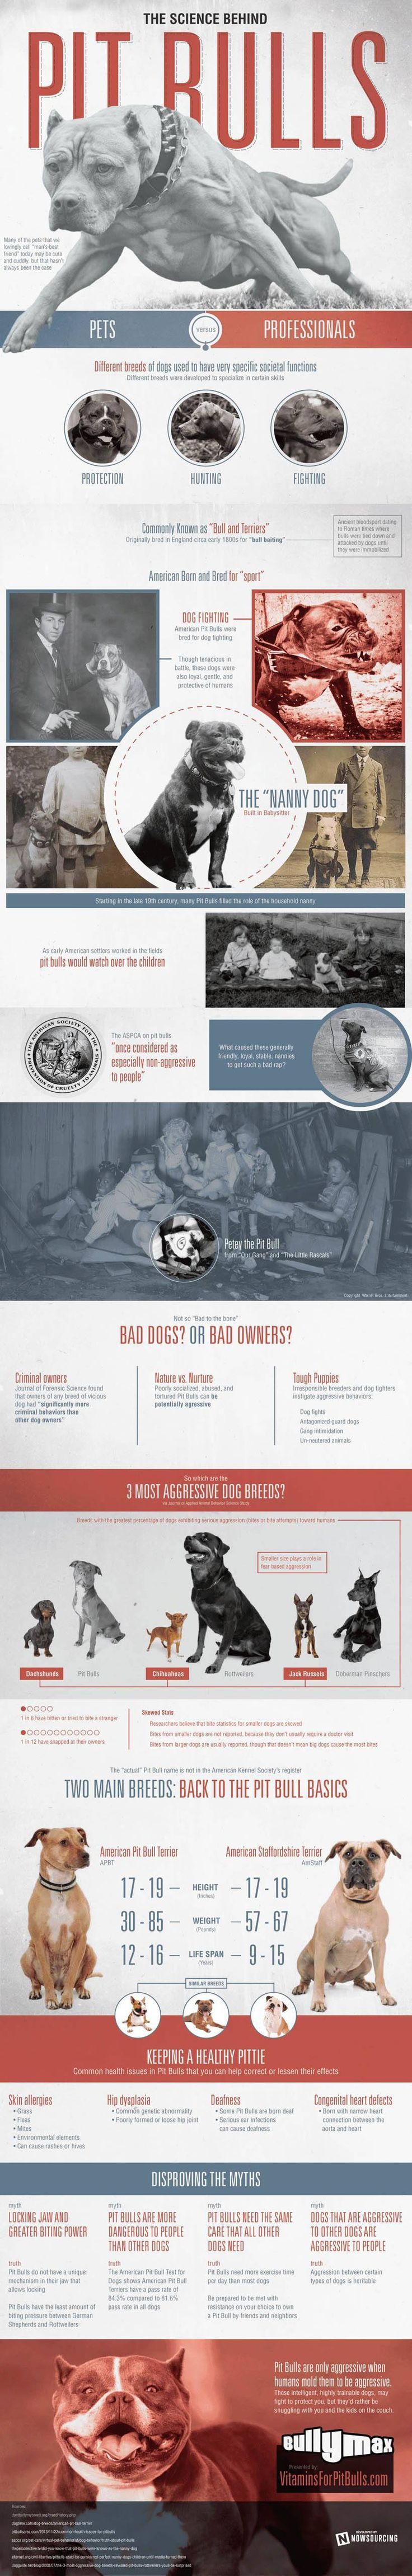 #Pitbulls, are easily the most misunderstood breed of dog. This infographic by nowsourcing.com sheds some light on some common misconceptions about the #pitbull breed.